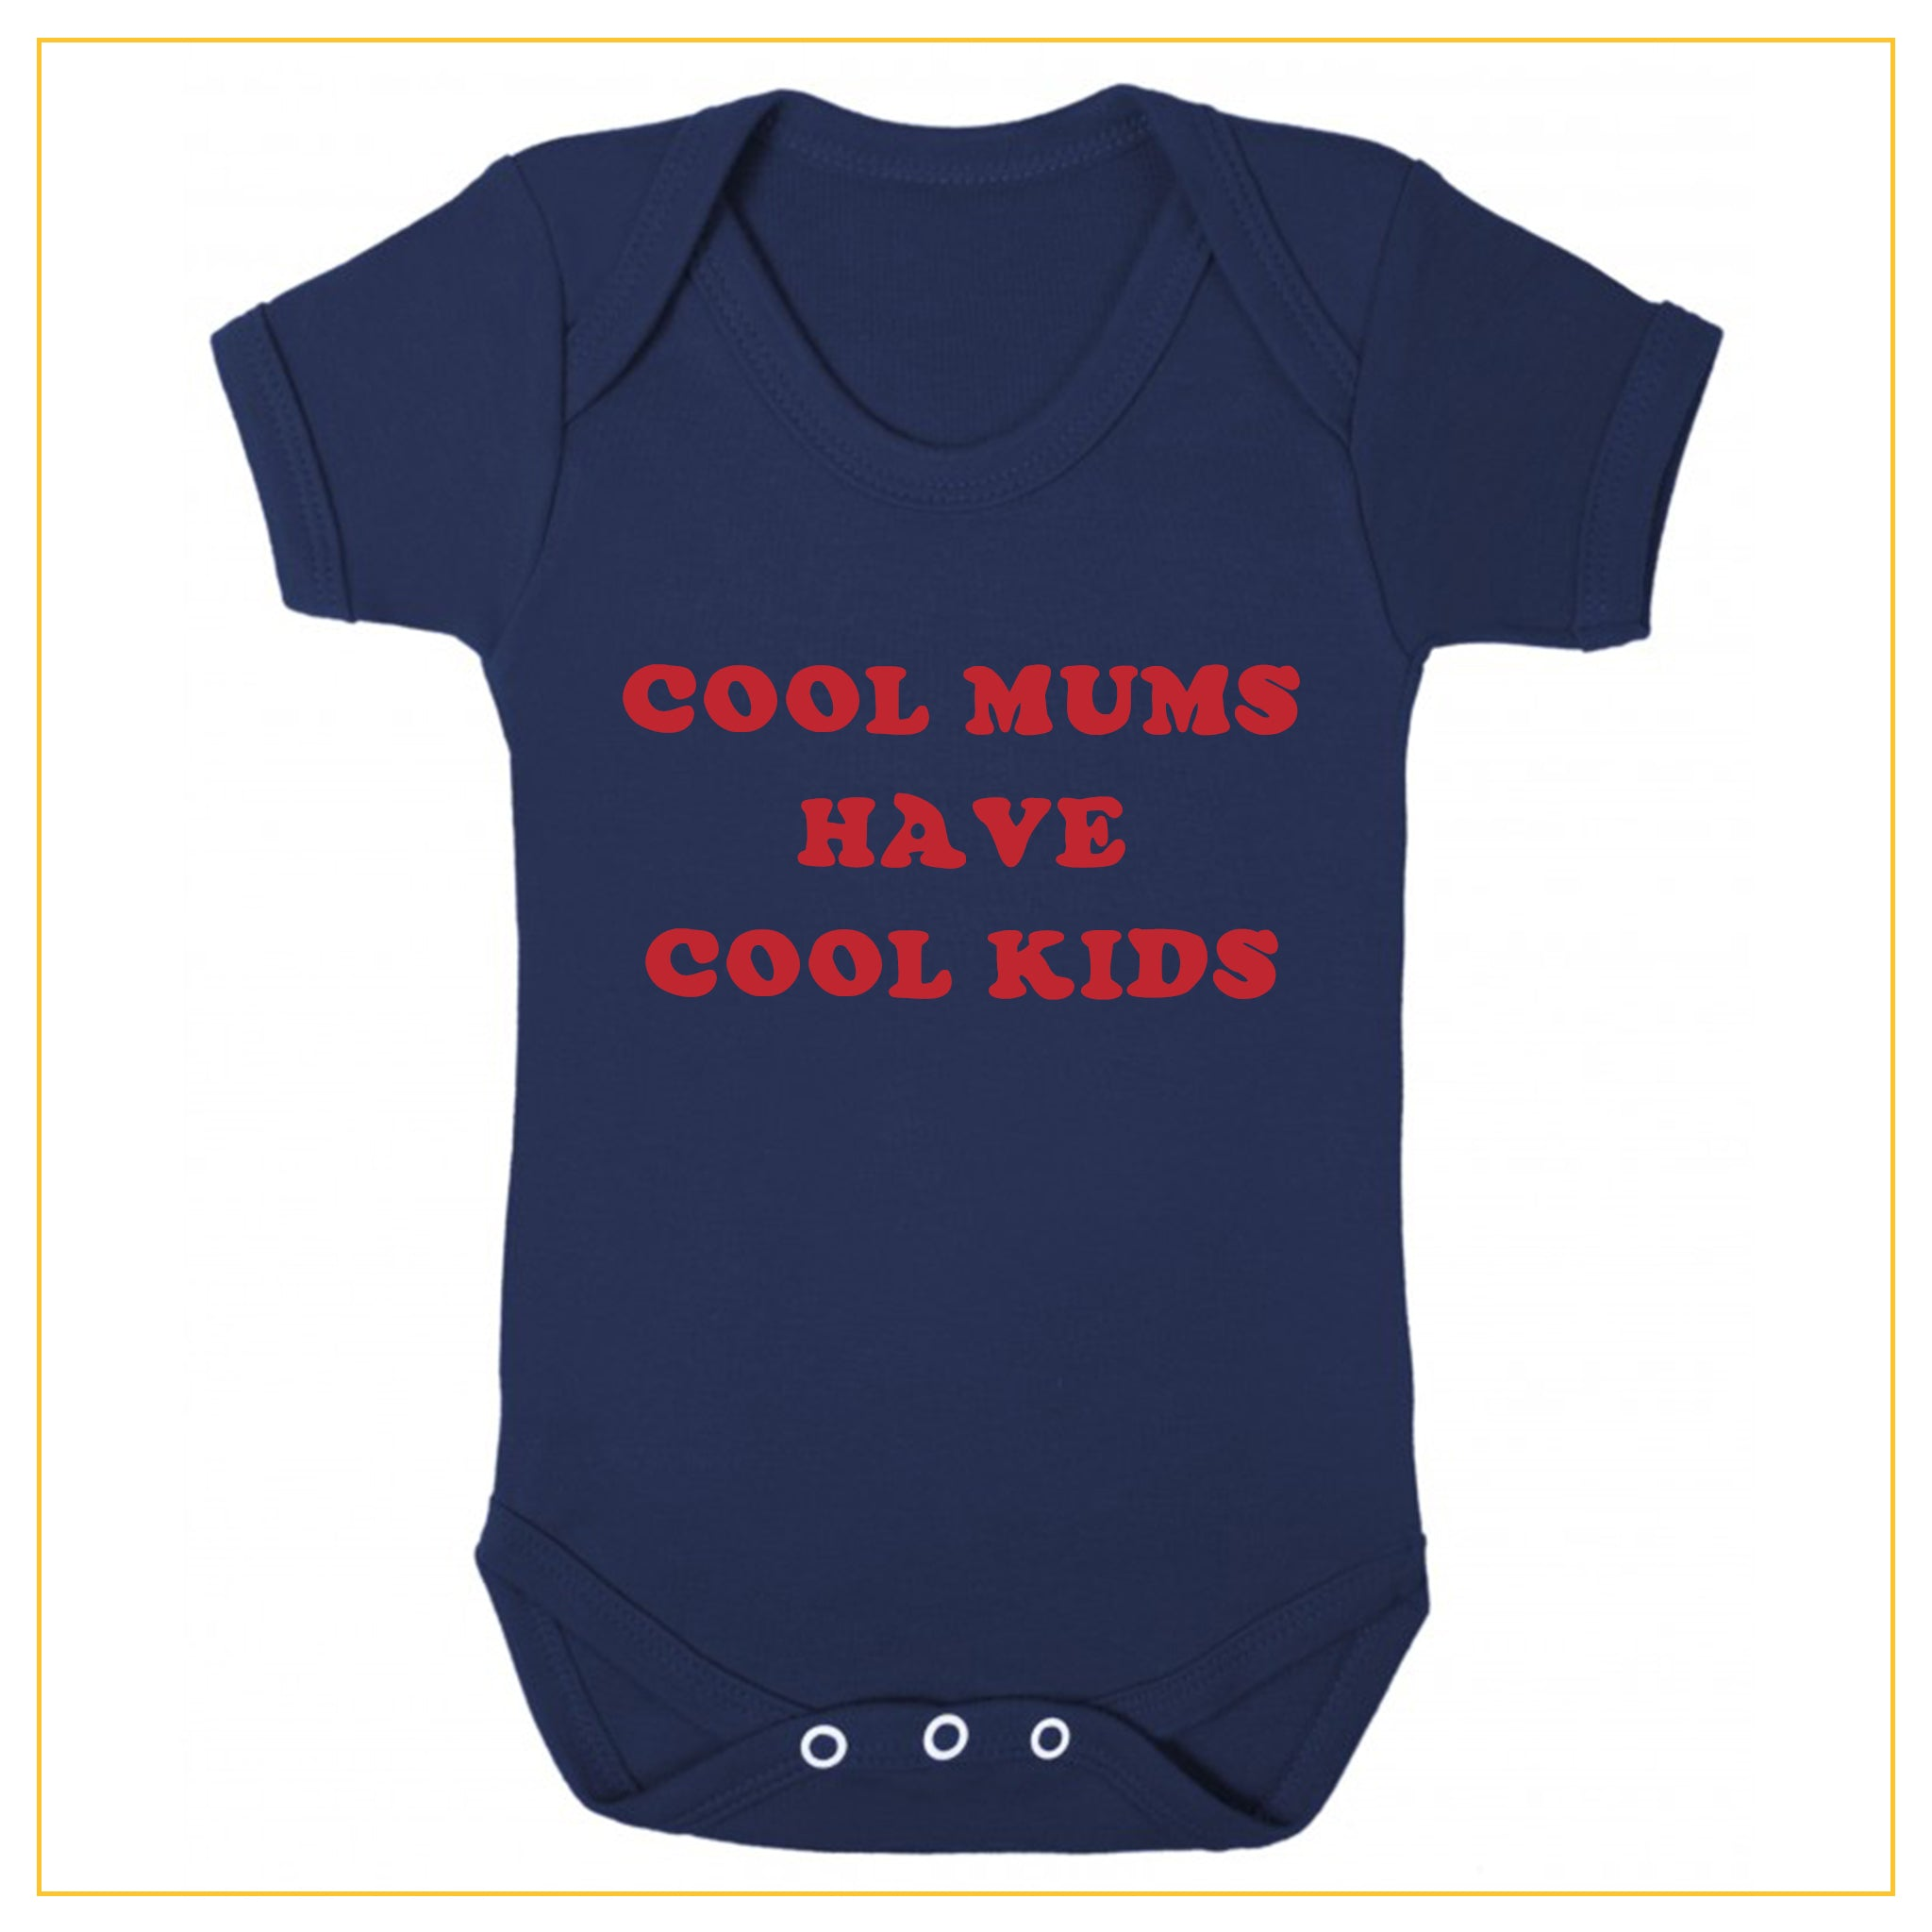 cool mums have cool kids baby onesie in navy blue